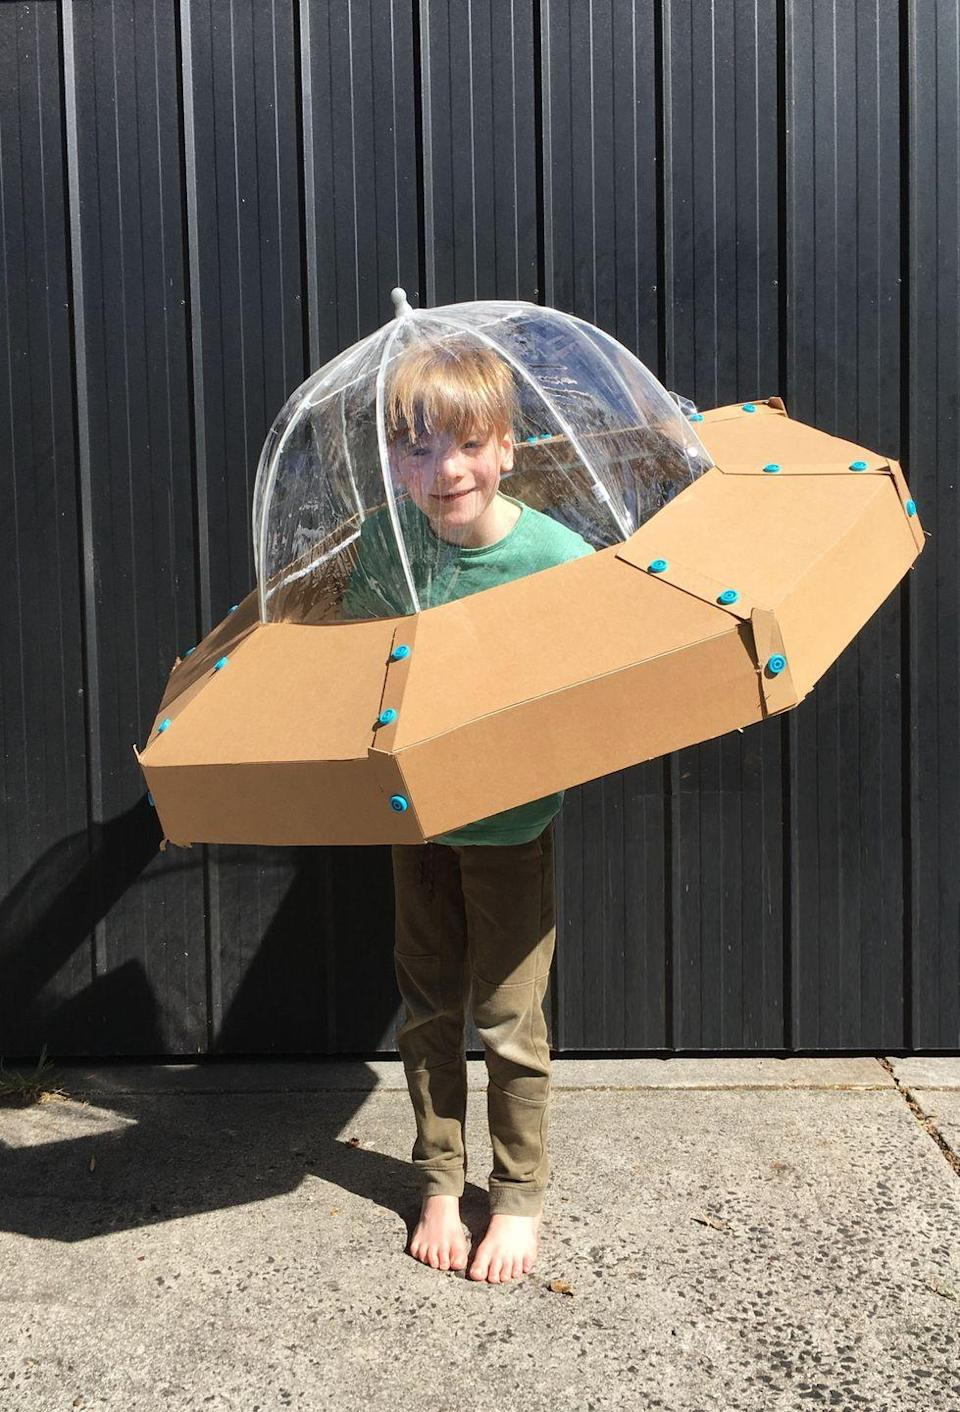 """<p>This is one of the coolest DIY Halloween costumes we've ever seen! Cardboard, a kid's clear umbrella, and a little time are all you'll need to invest in this amazing spaceship getup.</p><p><strong>Get the tutorial at <a href=""""https://www.zygotebrowndesigns.com/single-post/SPACESHIP"""" rel=""""nofollow noopener"""" target=""""_blank"""" data-ylk=""""slk:Zygote Brown Designs"""" class=""""link rapid-noclick-resp"""">Zygote Brown Designs</a>.</strong></p><p><a class=""""link rapid-noclick-resp"""" href=""""https://www.amazon.com/Totes-Bubble-Umbrella-Handle-Clear/dp/B017Y0KOOU/ref=sr_1_7?tag=syn-yahoo-20&ascsubtag=%5Bartid%7C10050.g.28496790%5Bsrc%7Cyahoo-us"""" rel=""""nofollow noopener"""" target=""""_blank"""" data-ylk=""""slk:SHOP KIDS UMBRELLAS"""">SHOP KIDS UMBRELLAS</a></p>"""